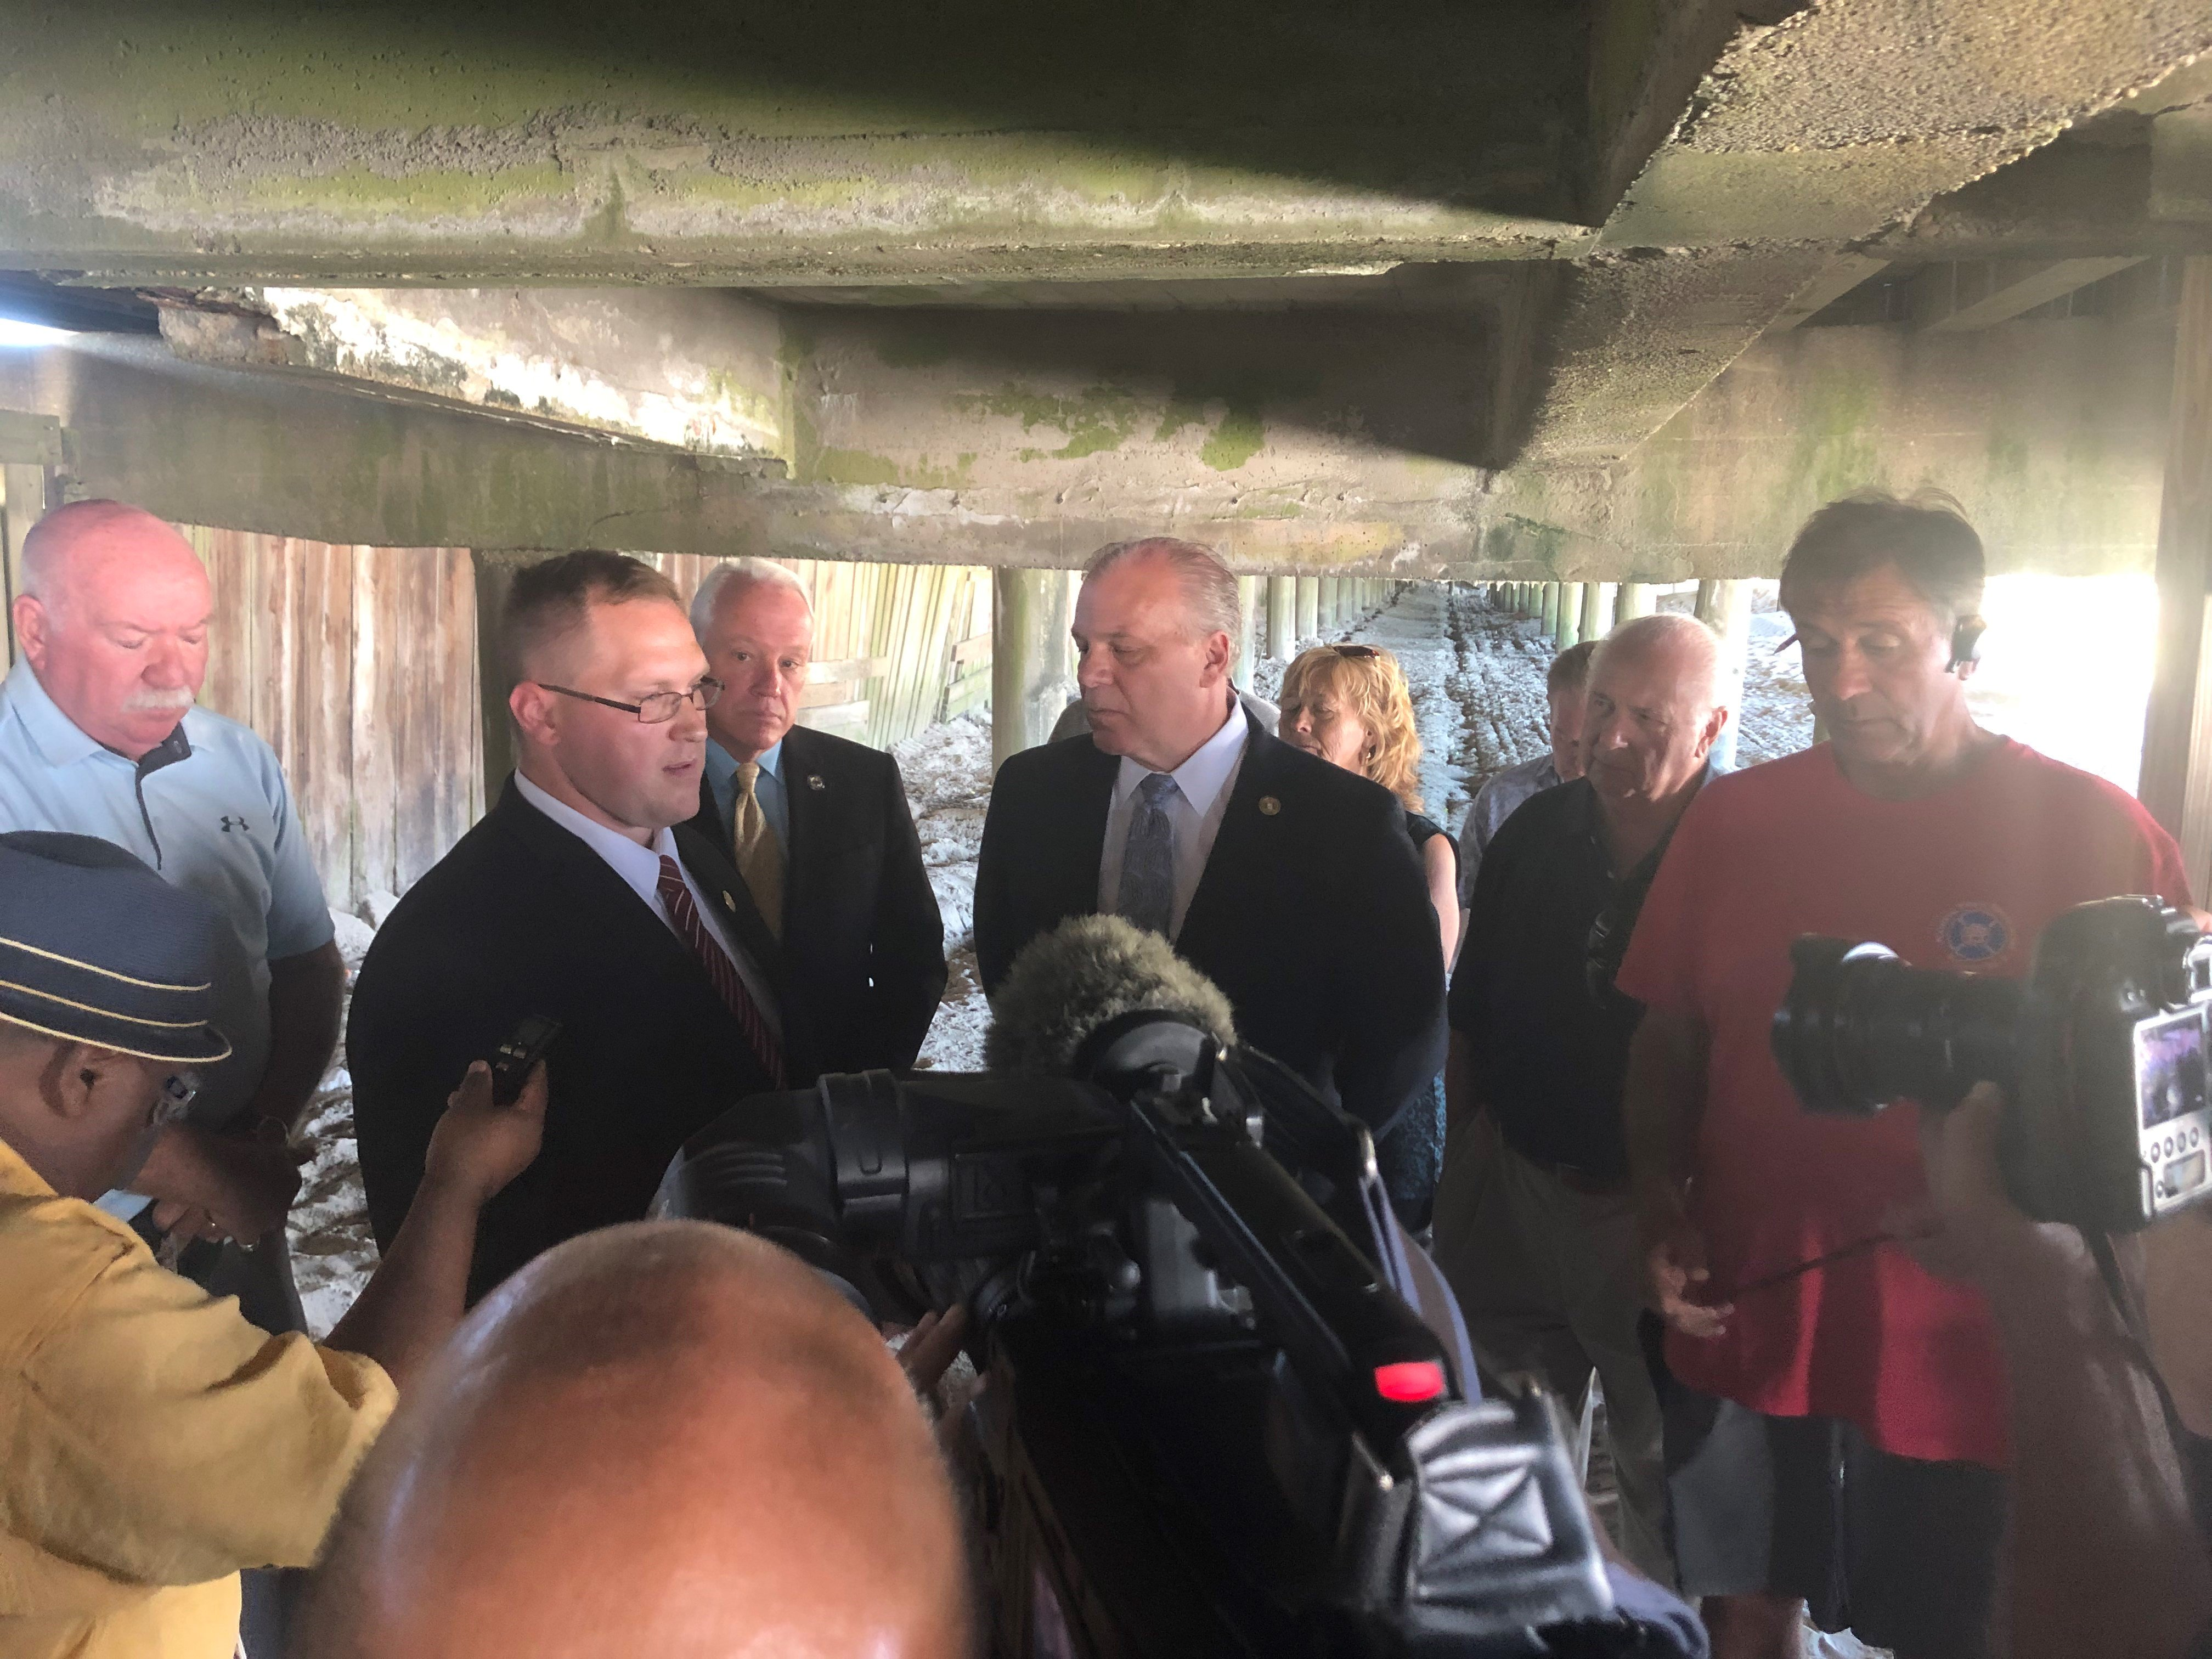 TESTA: Sweeney, Andrzejczak can't make up for 'screwing South Jersey' by misusing the gas tax for boardwalk repairs